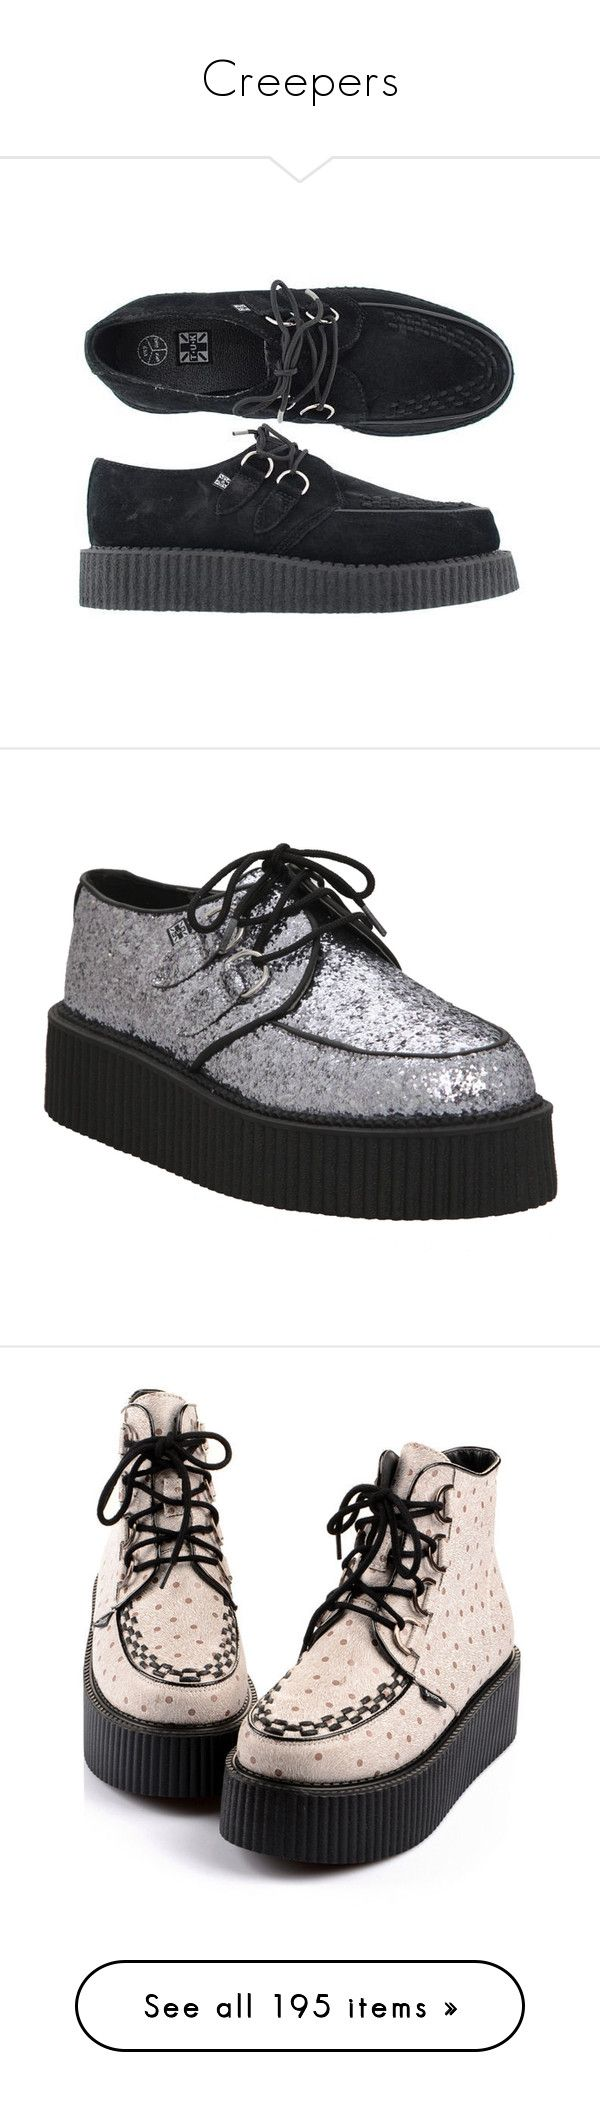 """""""Creepers"""" by life-love-peace ❤ liked on Polyvore featuring shoes, creeper, suede shoes, black creeper shoes, suede material shoes, creeper shoes, black suede shoes, creepers, black shoes and black glitter shoes"""